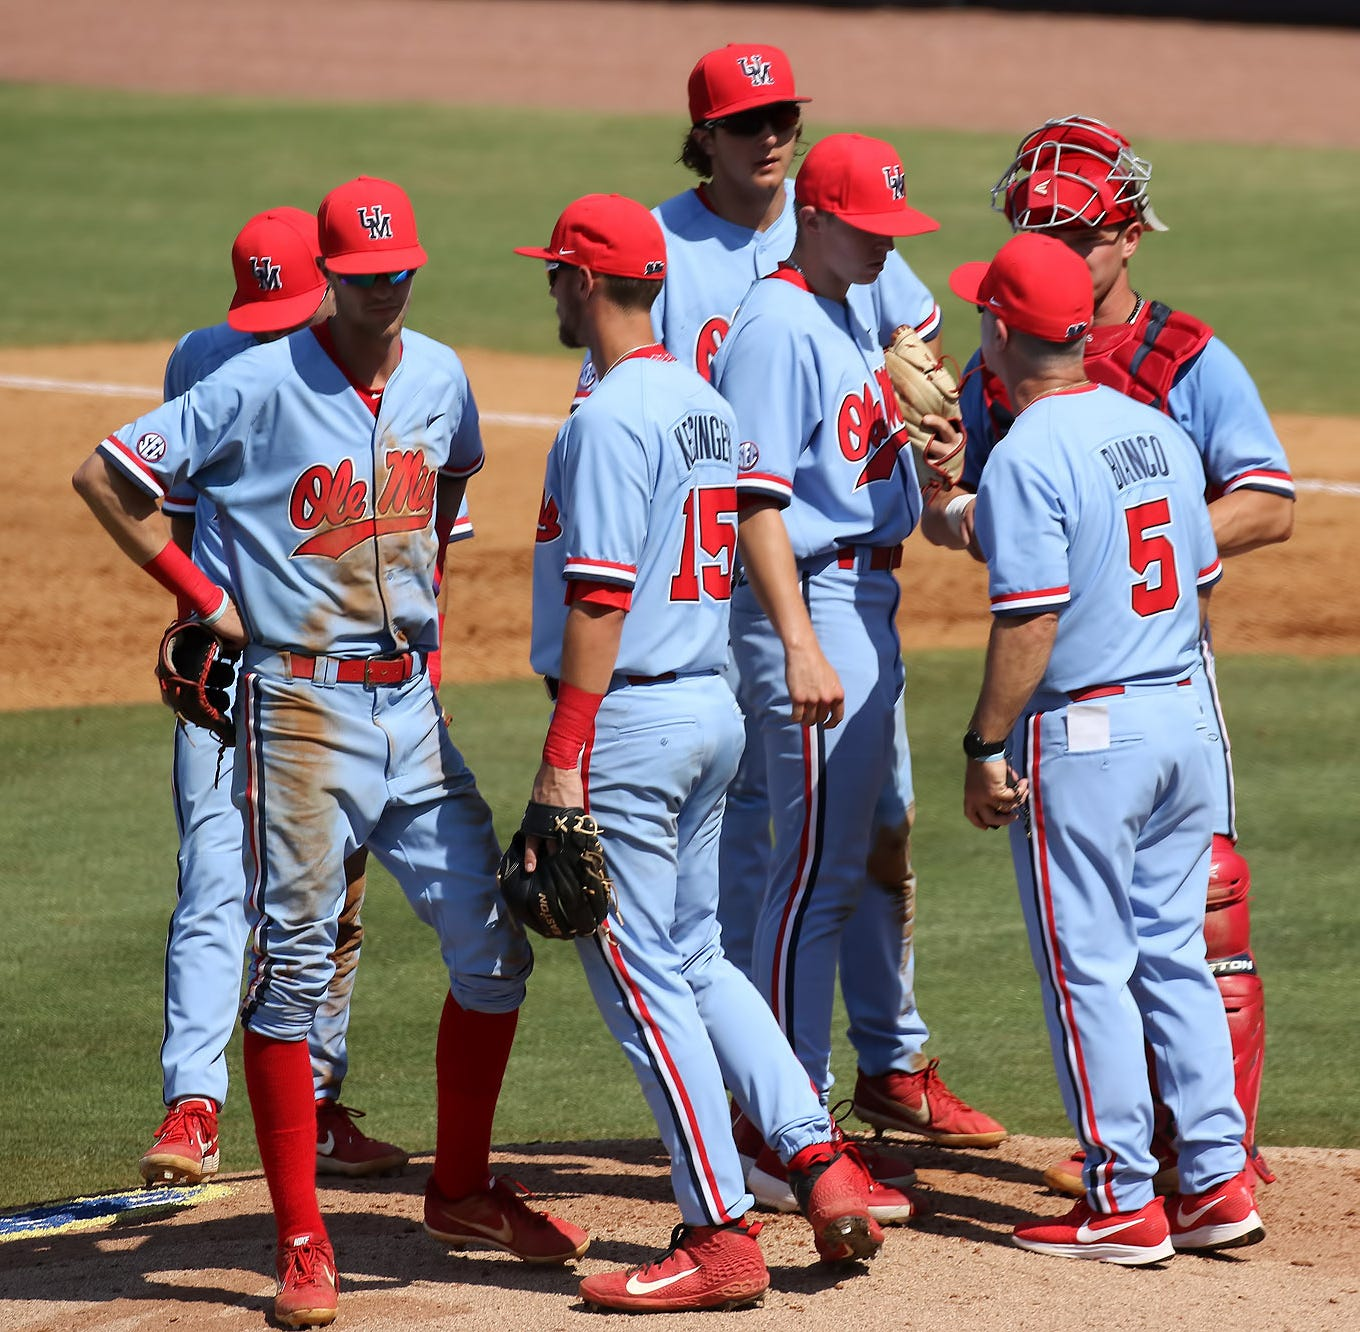 Ole Miss baseball can't hold on, loses in walk-off fashion 11-10 in SEC Championship vs. Vanderbilt